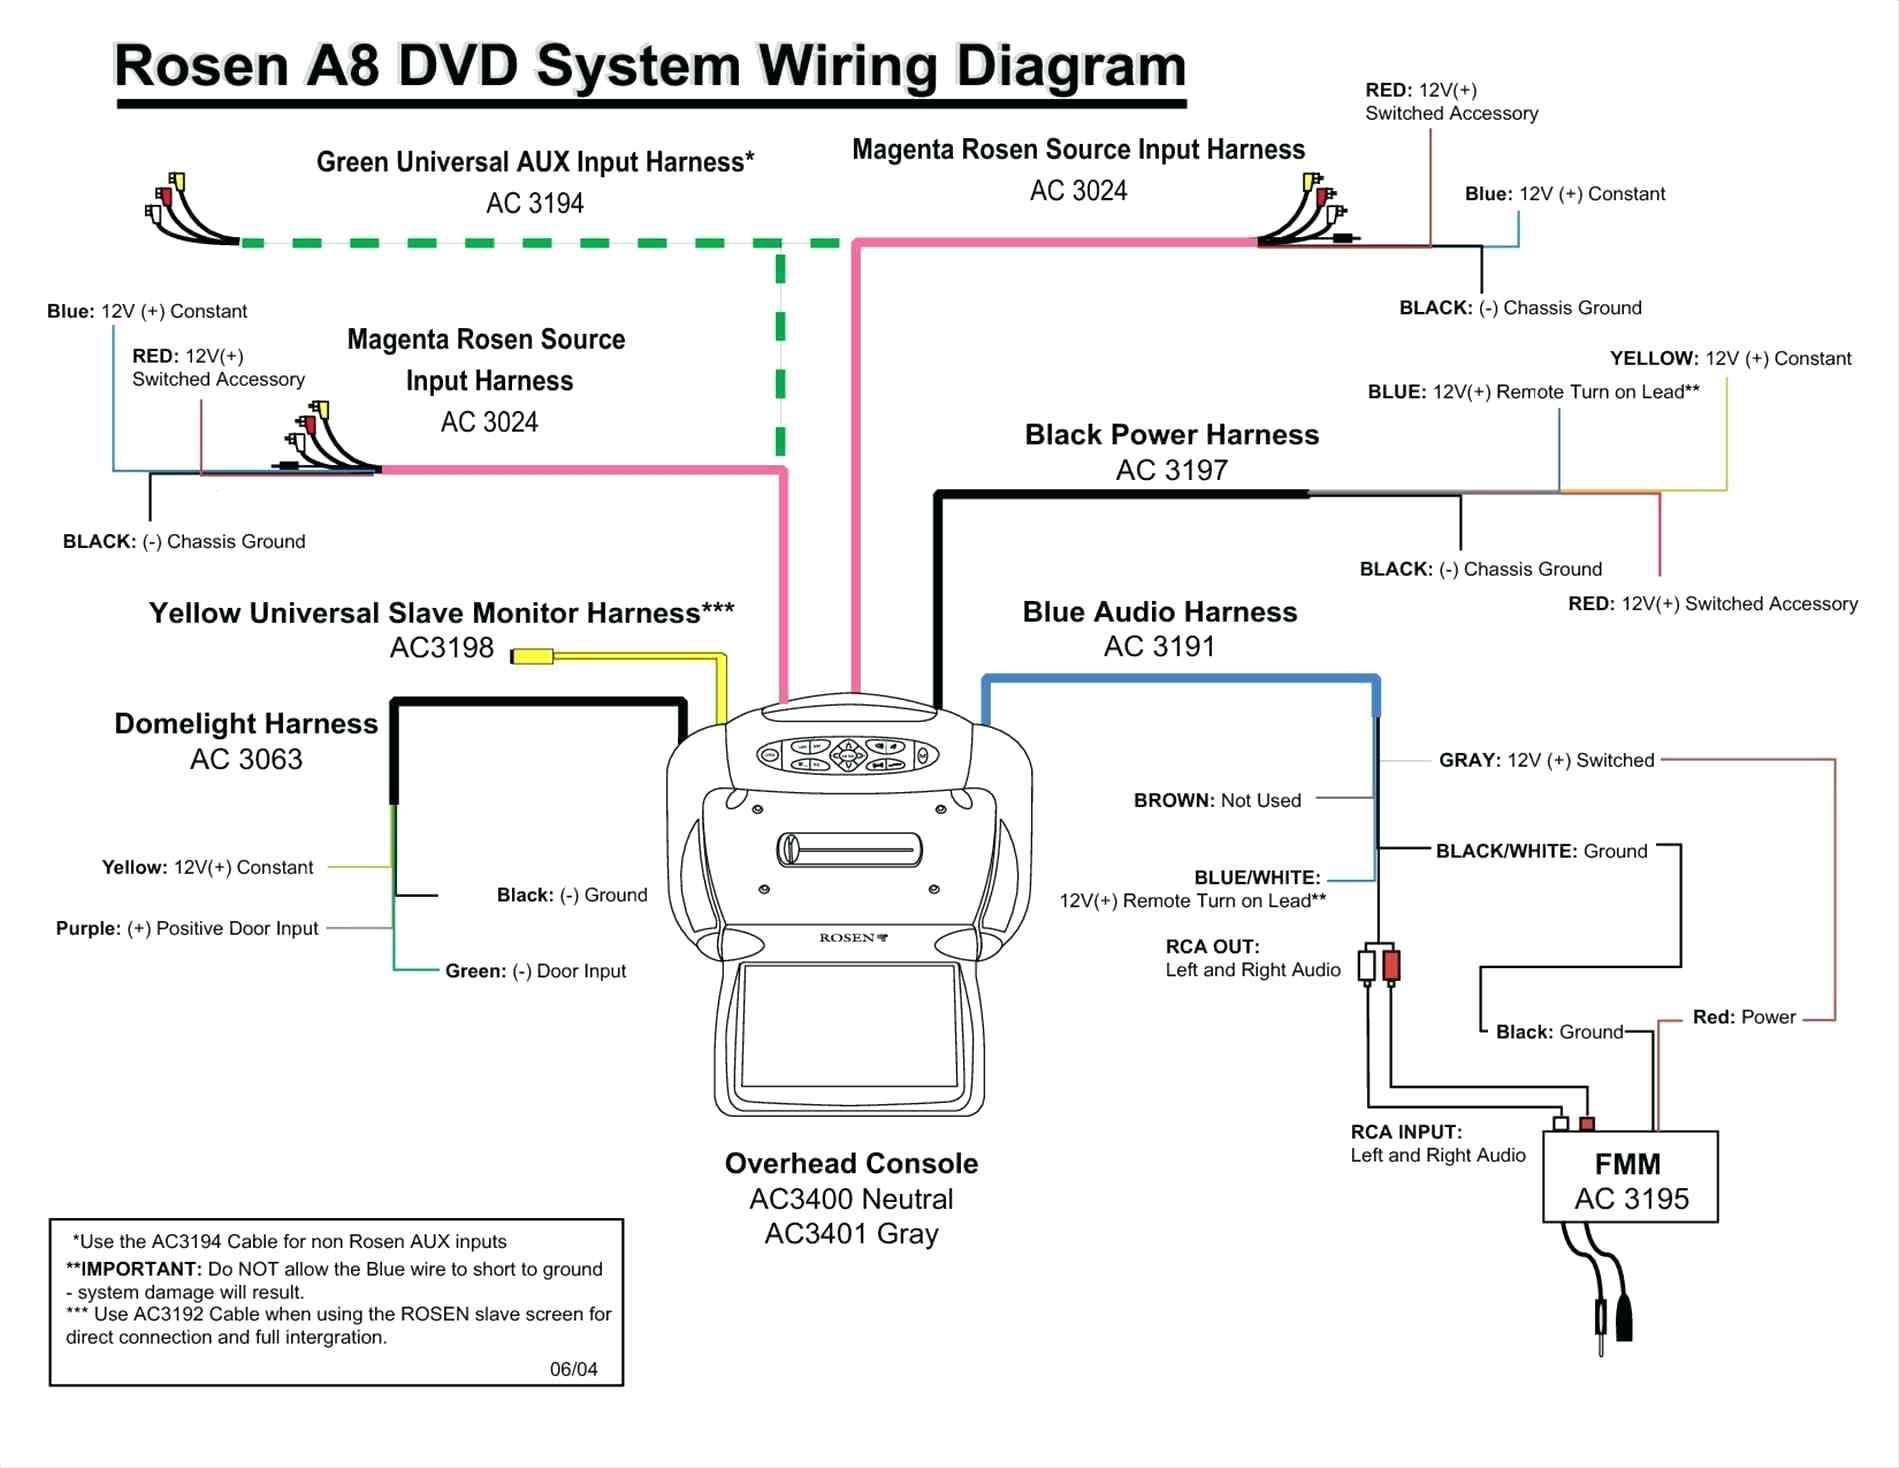 3 phase buck boost transformer wiring diagram Download-square d buck boost transformer wiring diagram Collection Buck Boost Transformer Wiring Diagram Lovely Square 18-b